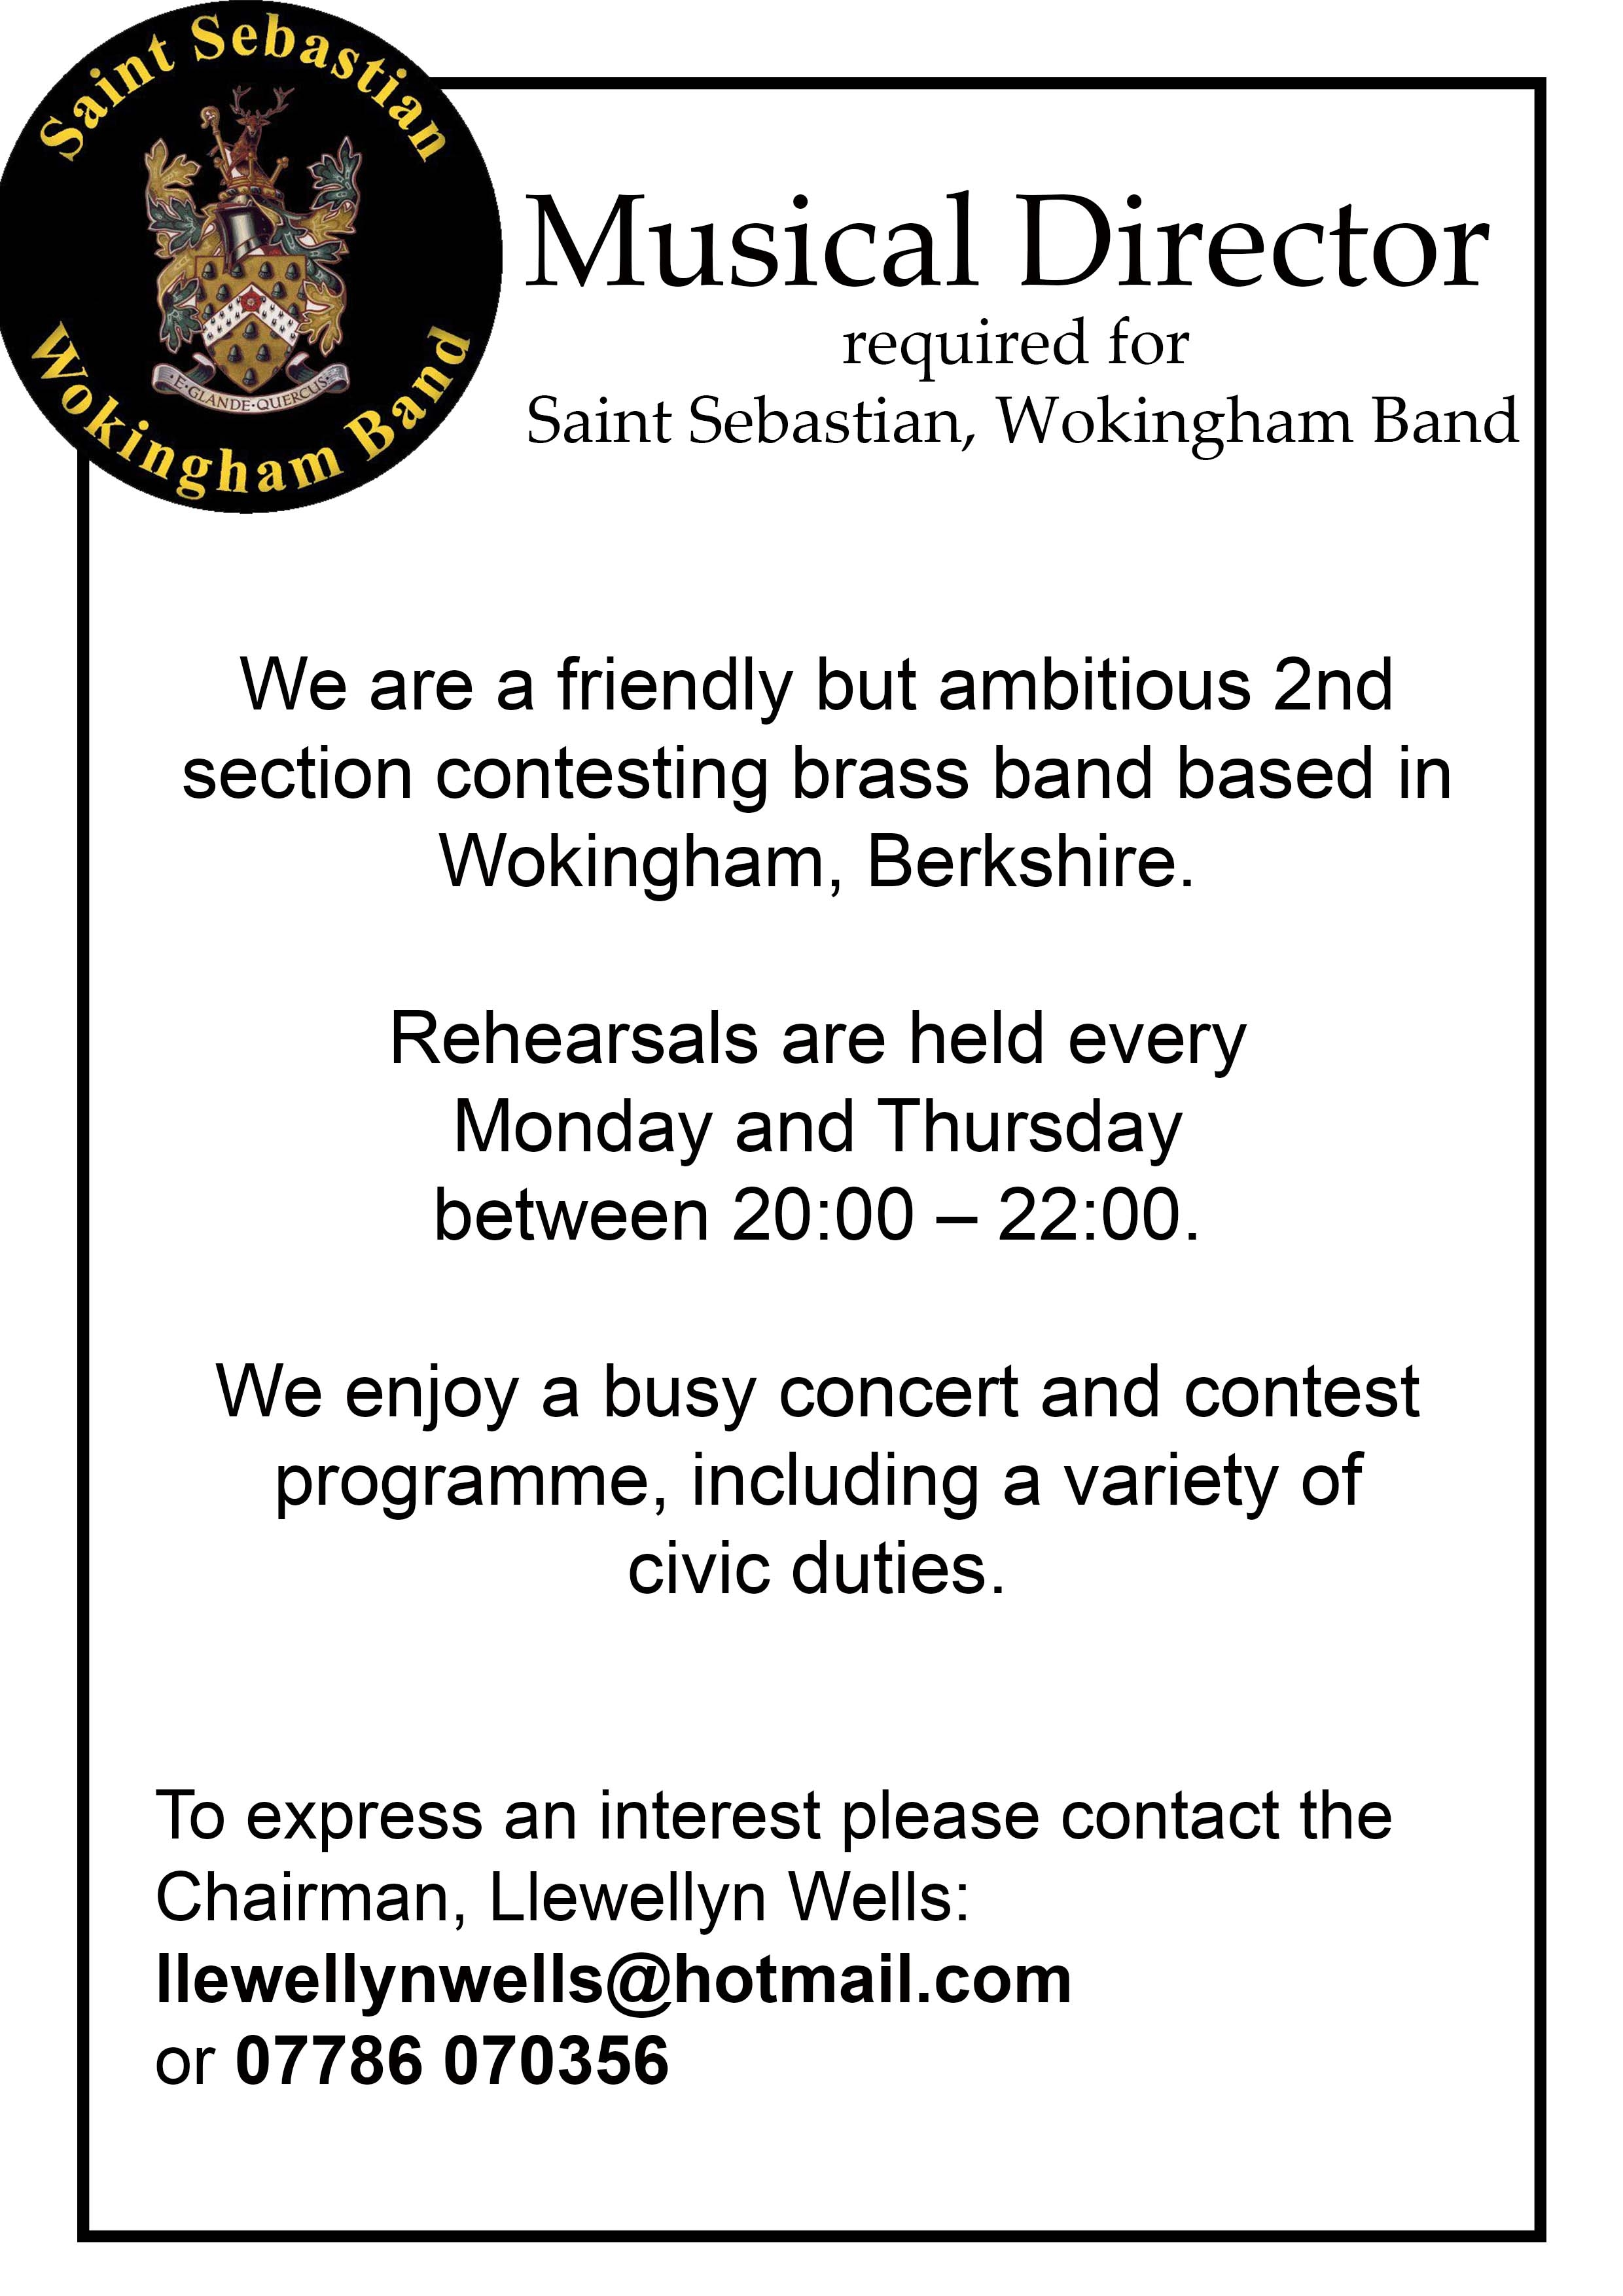 Saint Sebastian are looking for a new Musical Director